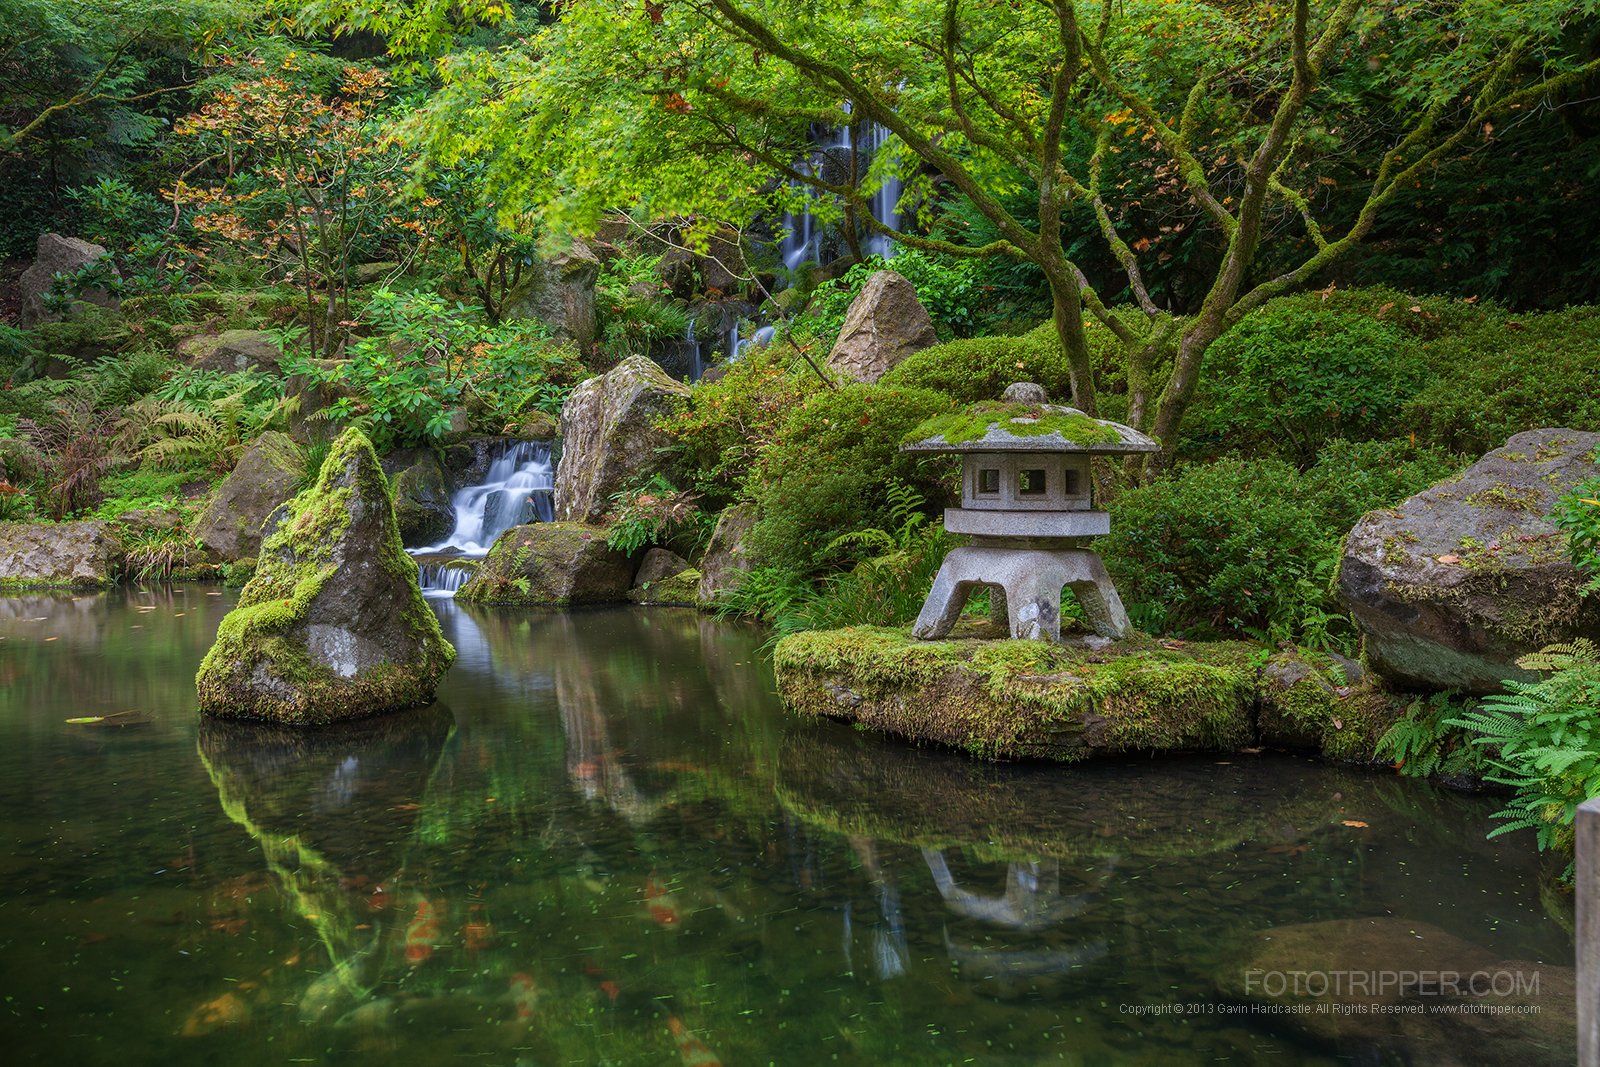 How to shoot portland japanese garden fototripper for Japanese garden with koi pond